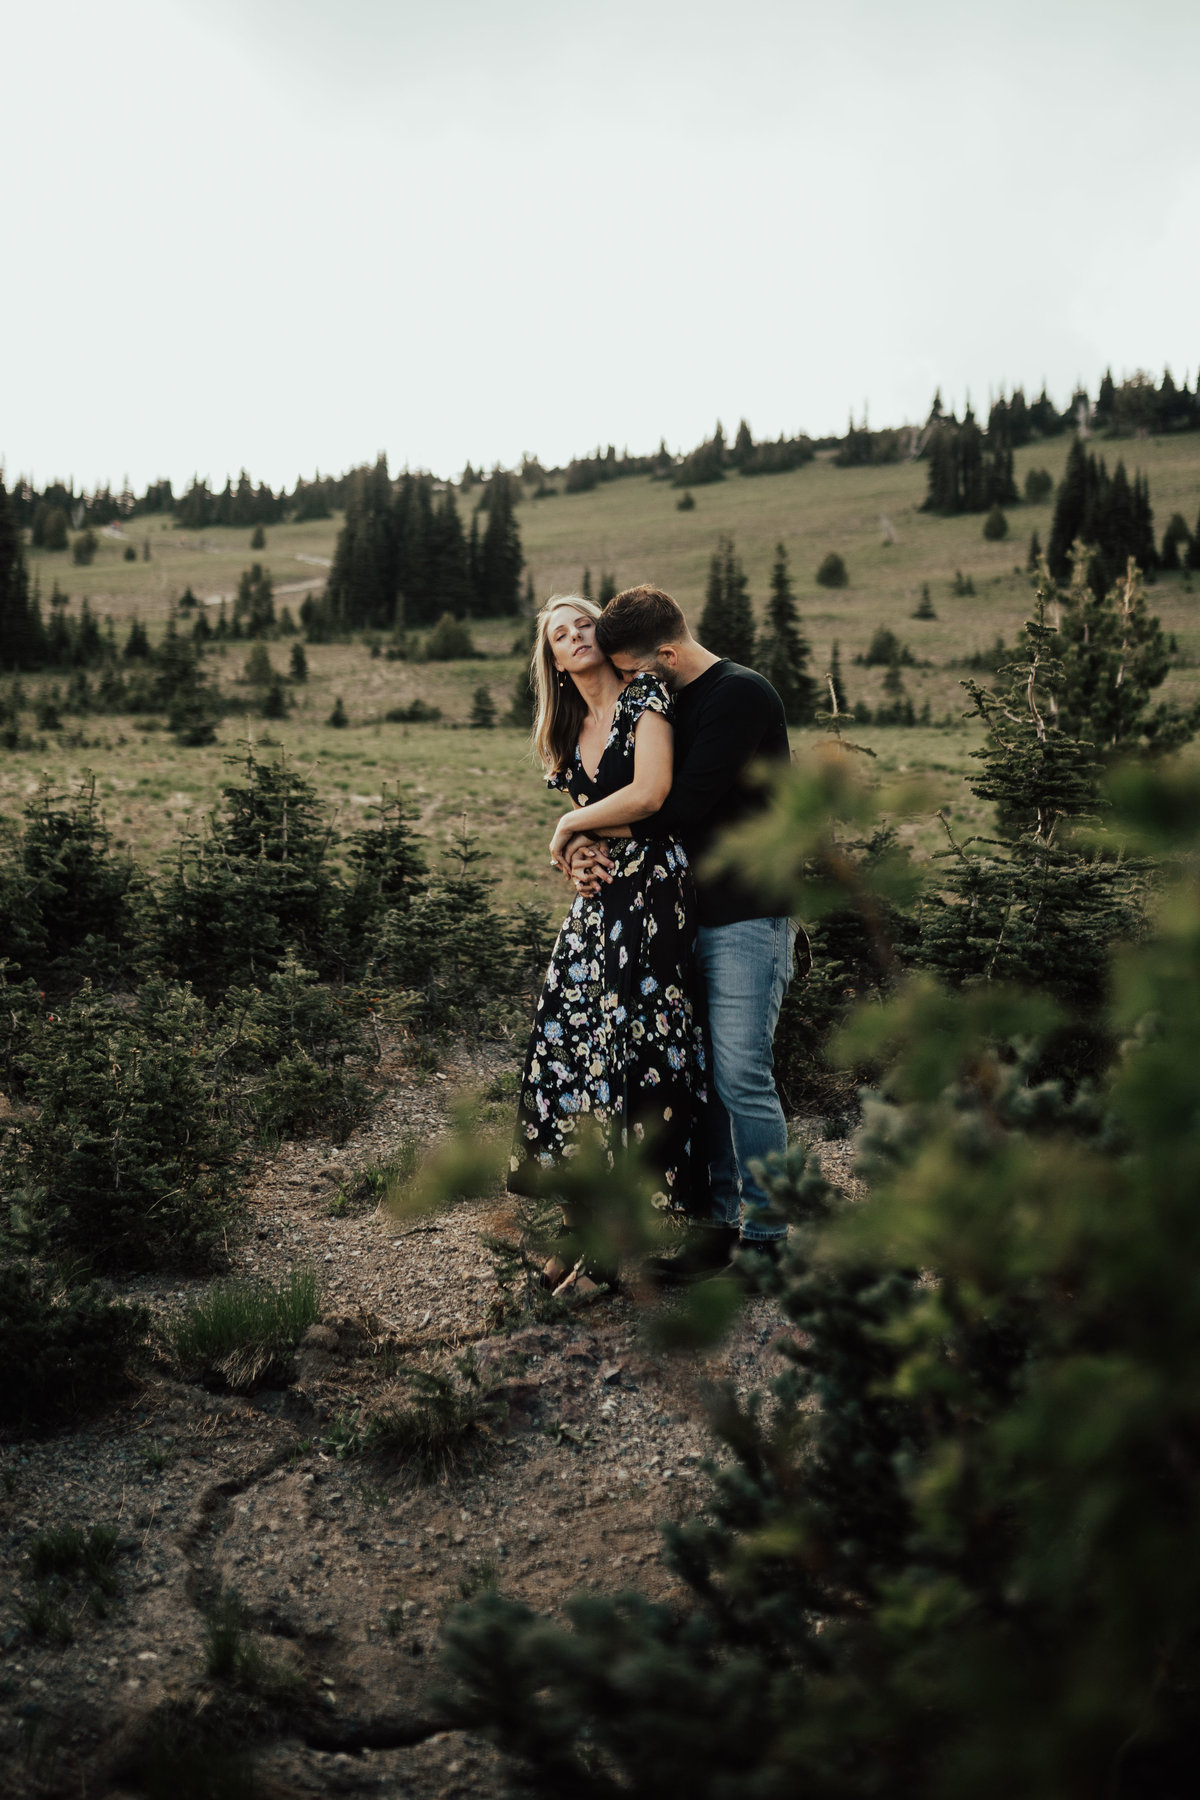 Marnie_Cornell_Photography_Engagement_Mount_Rainier_RK-45